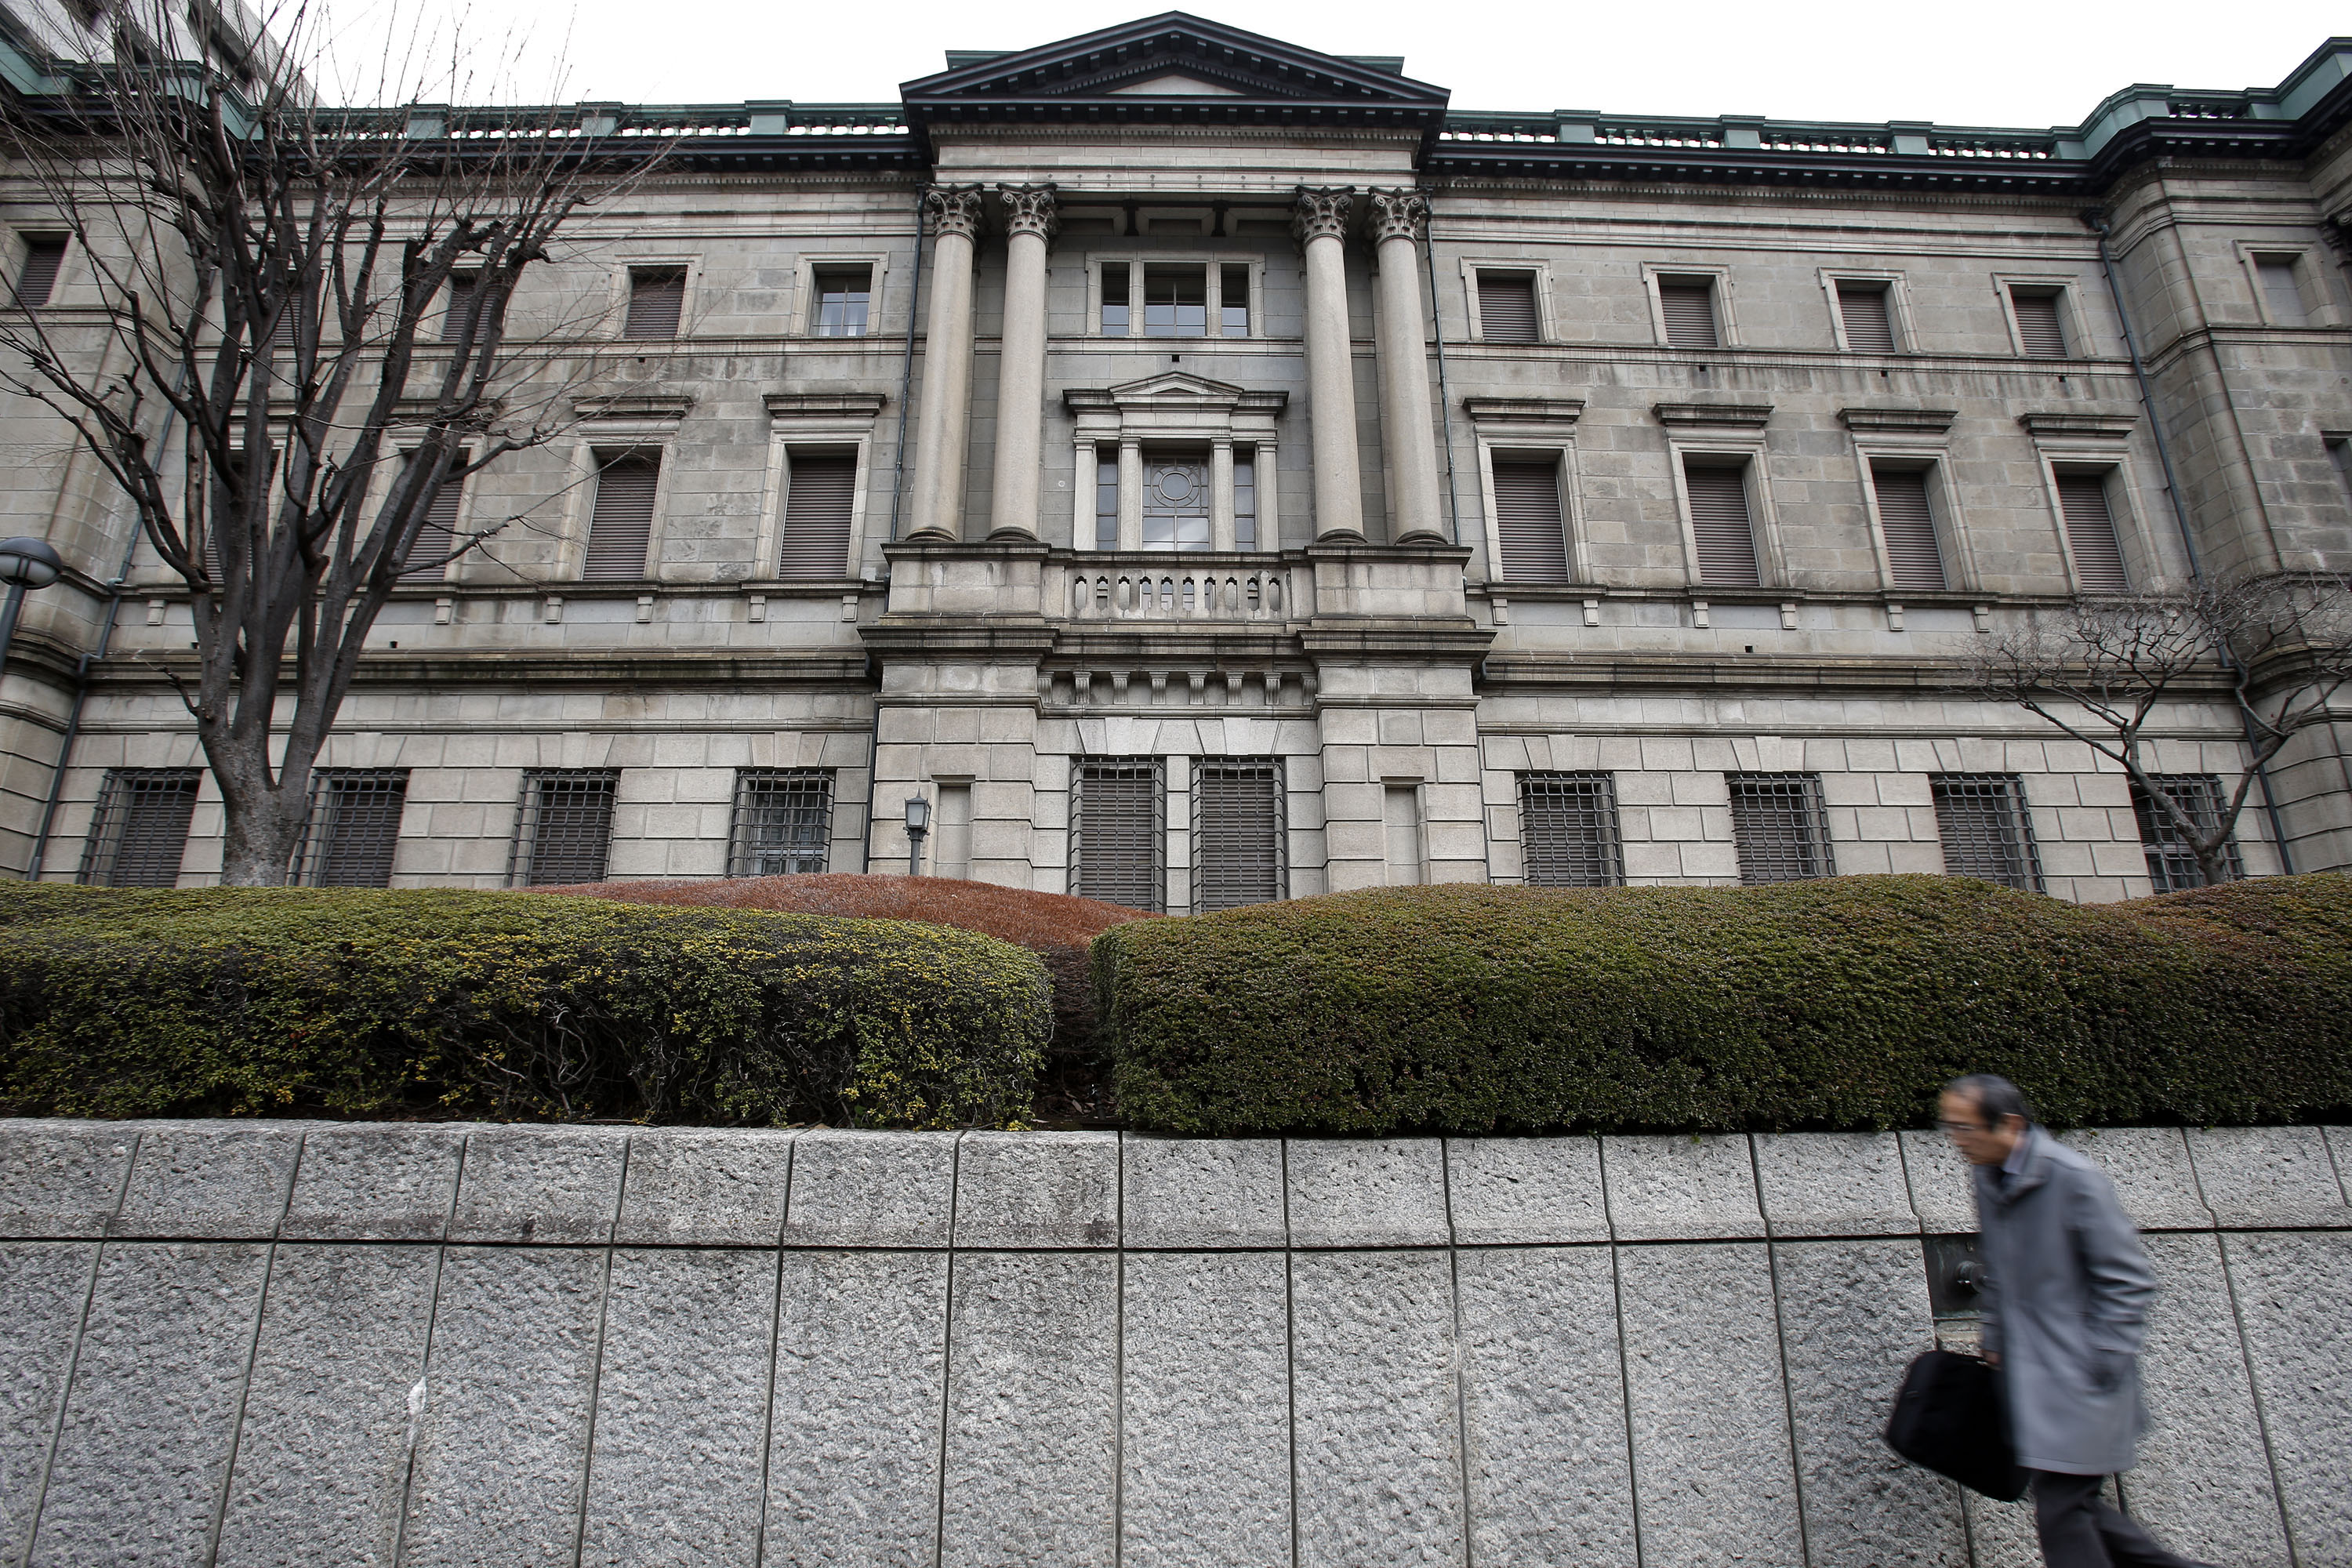 A pedestrian walks past the Bank of Japan headquarters in Tokyo, Japan, on Thursday, Feb. 14, 2013. Asian stocks rose after the Bank of Japan maintained its asset-purchasing program before its governor steps down next month. Photographer: Kiyoshi Ota/Bloomberg